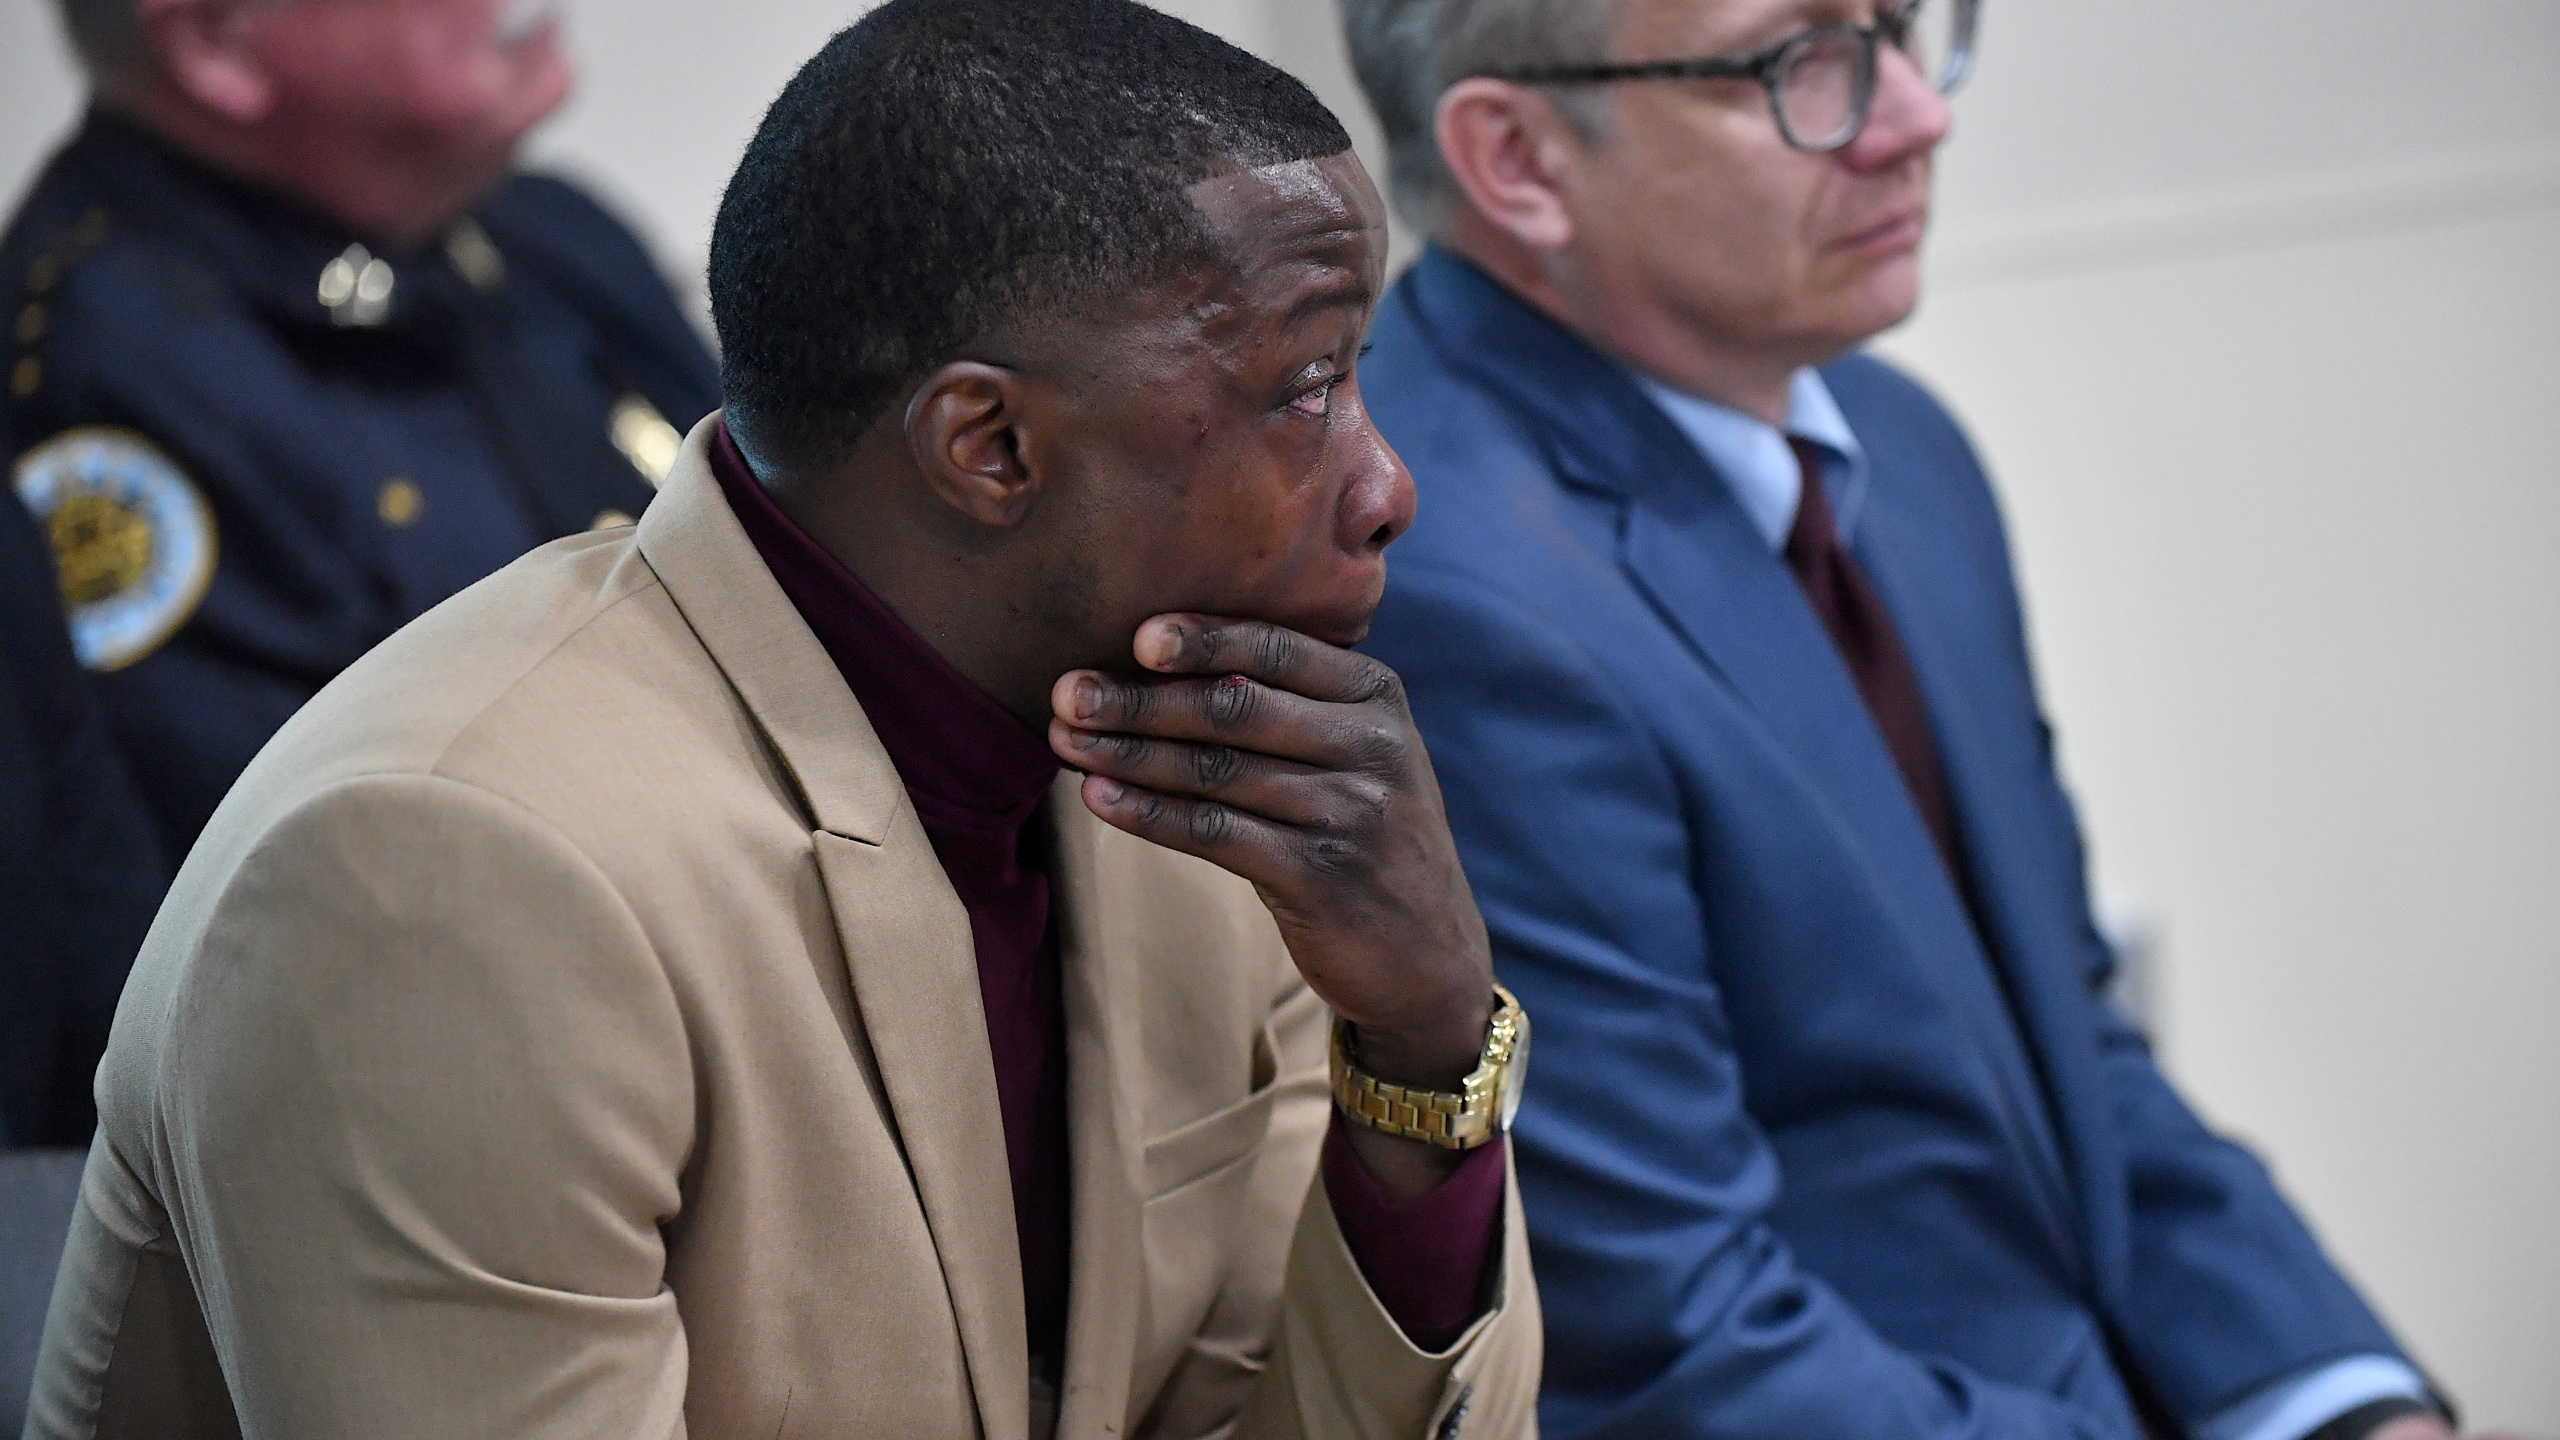 James Shaw Jr. attends a press conference on April 22, 2018 in Nashville, Tennessee. (Credit: Jason Davis/Getty Images)